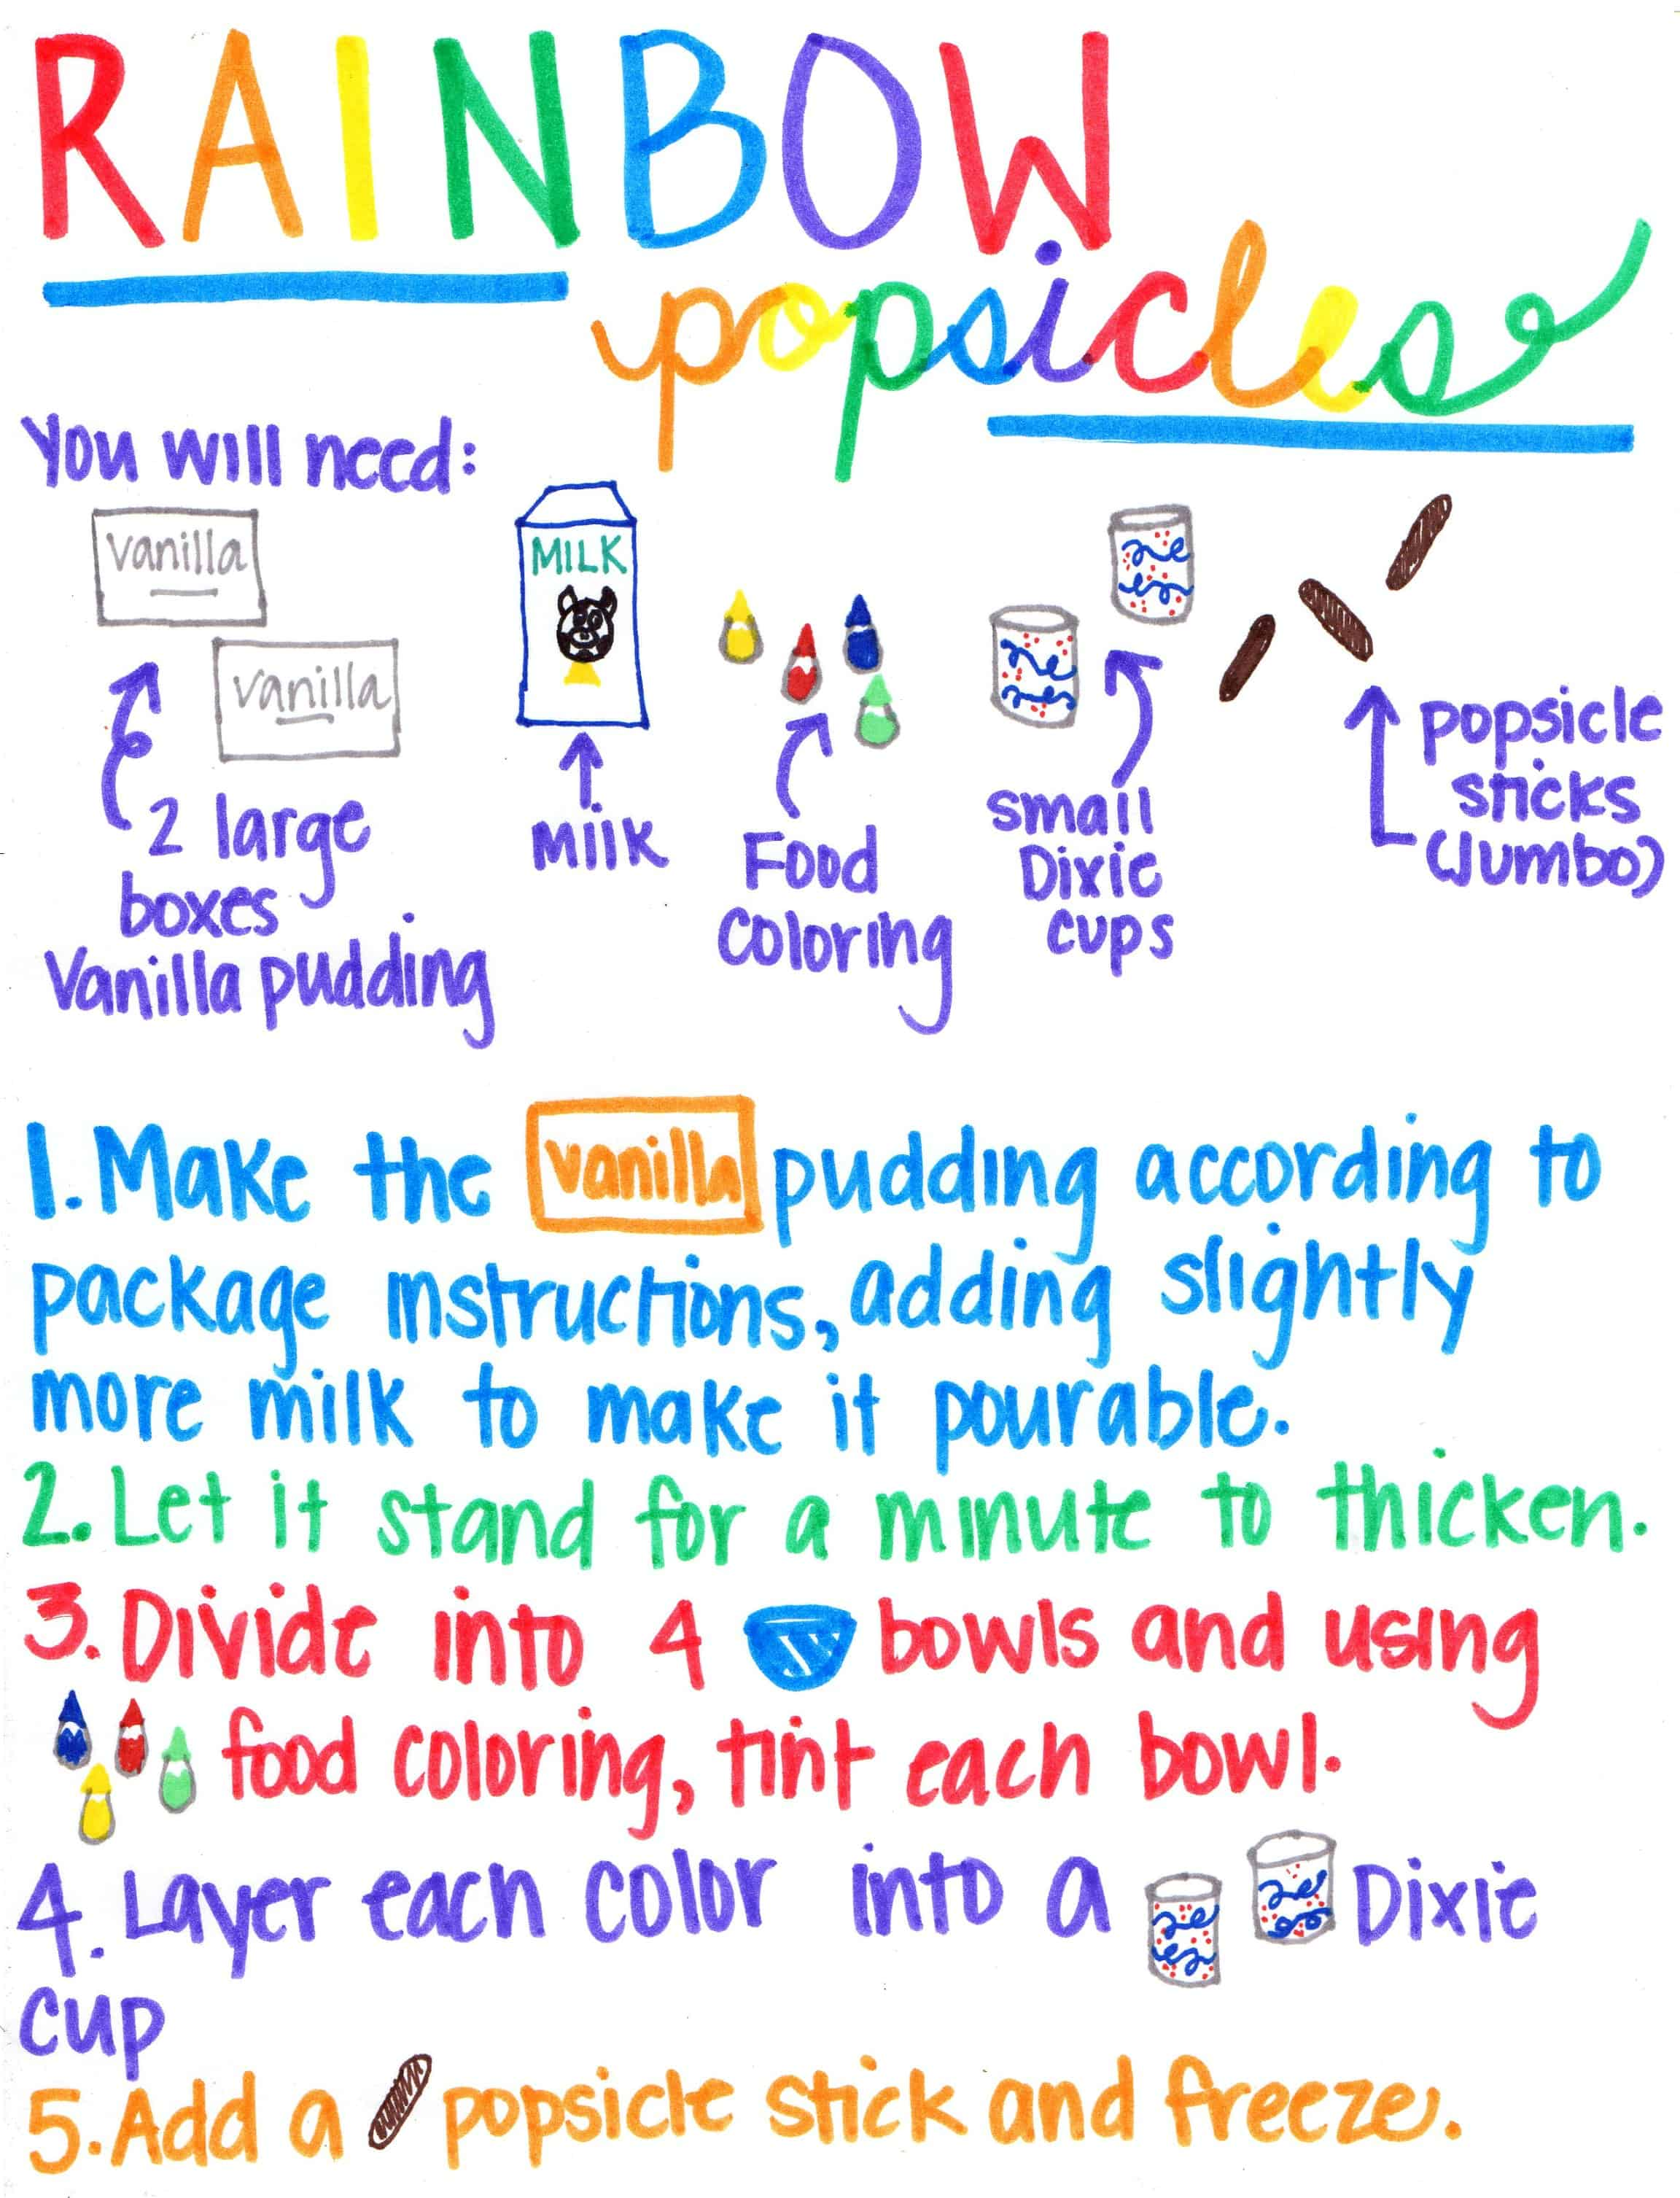 printable recipe for rainbow popsicles